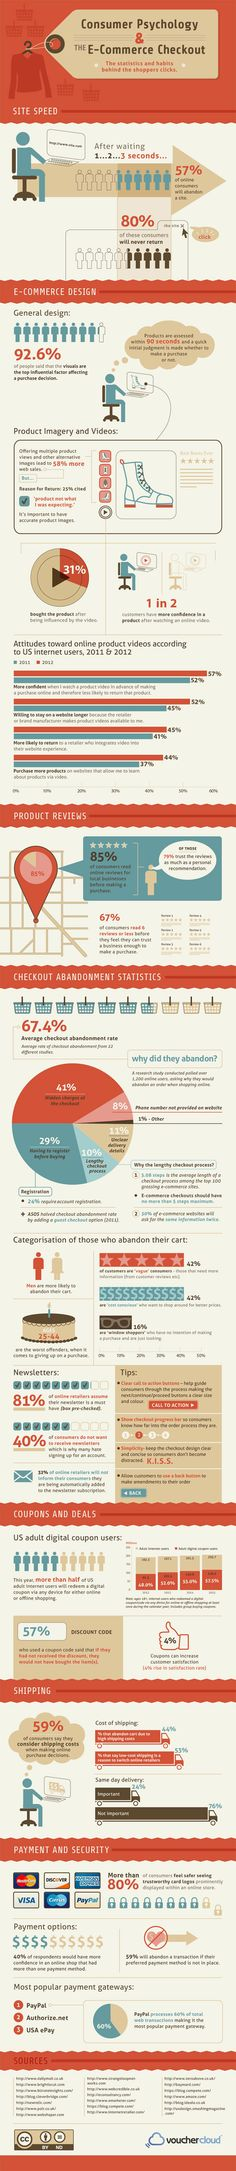 The Psychology of Online Checkout [Infographic]